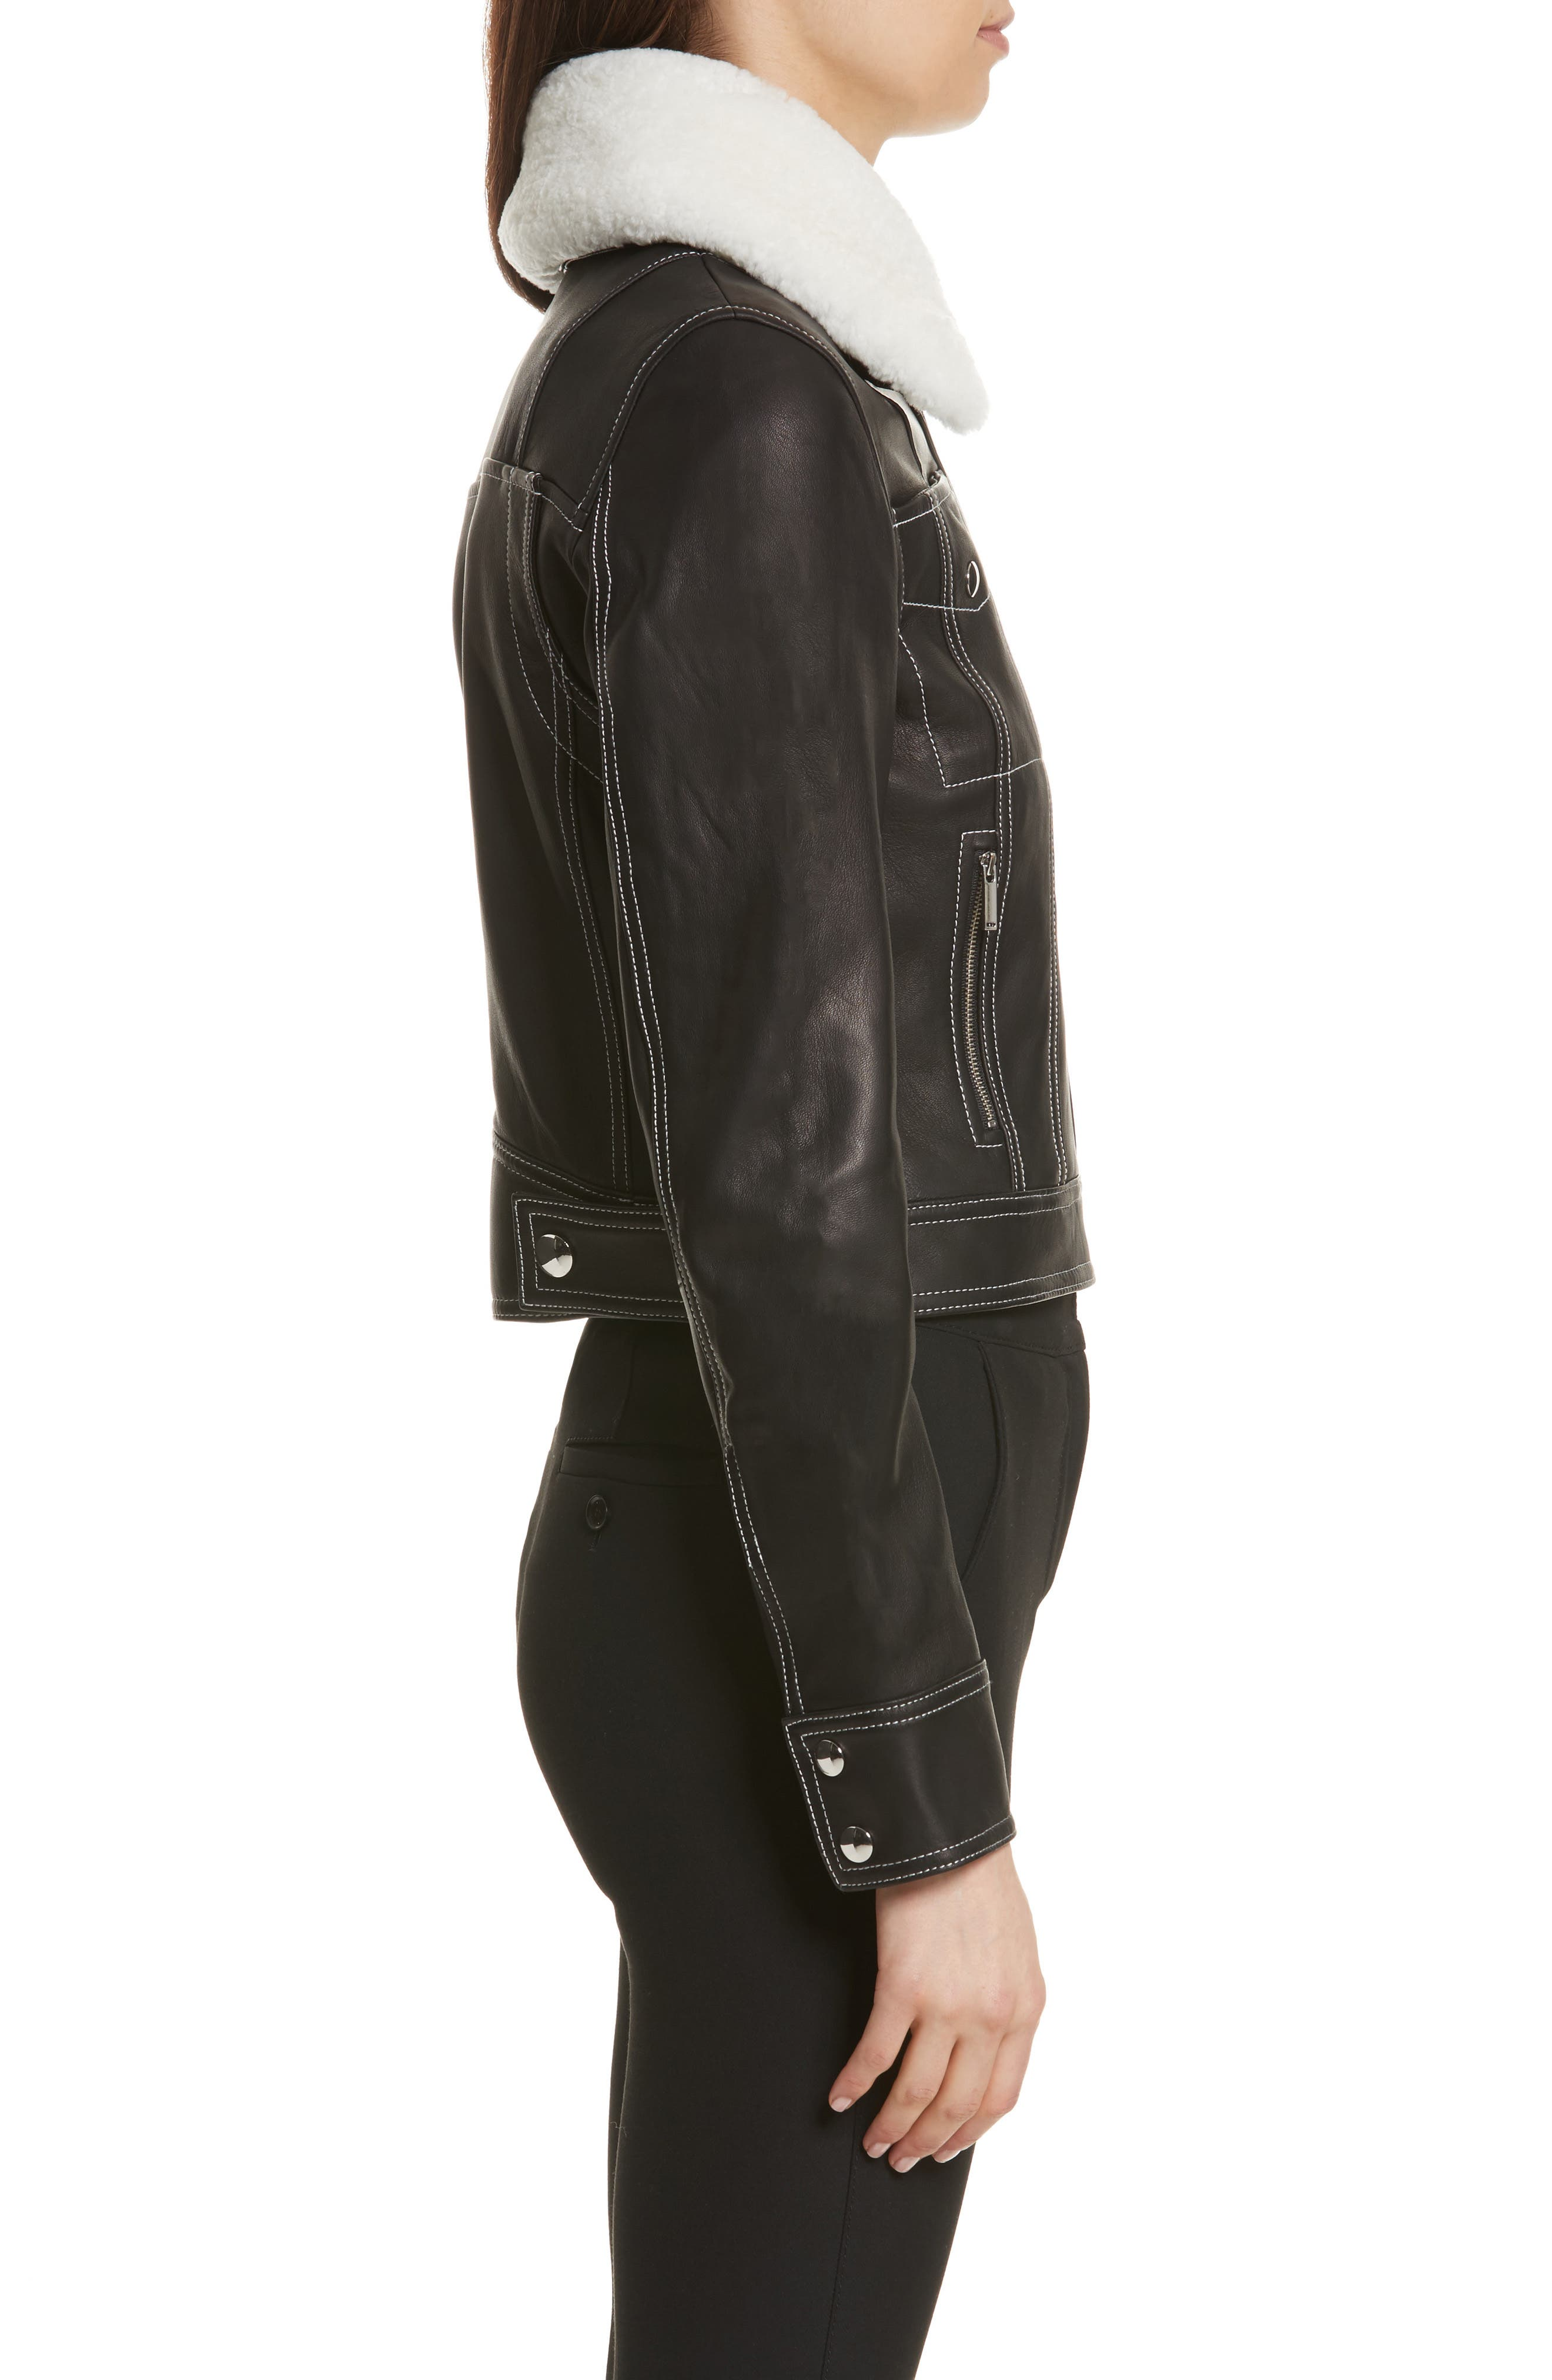 GREY Jason Wu Shrunken Leather Jacket with Removable Genuine Shearling Collar,                             Alternate thumbnail 3, color,                             009